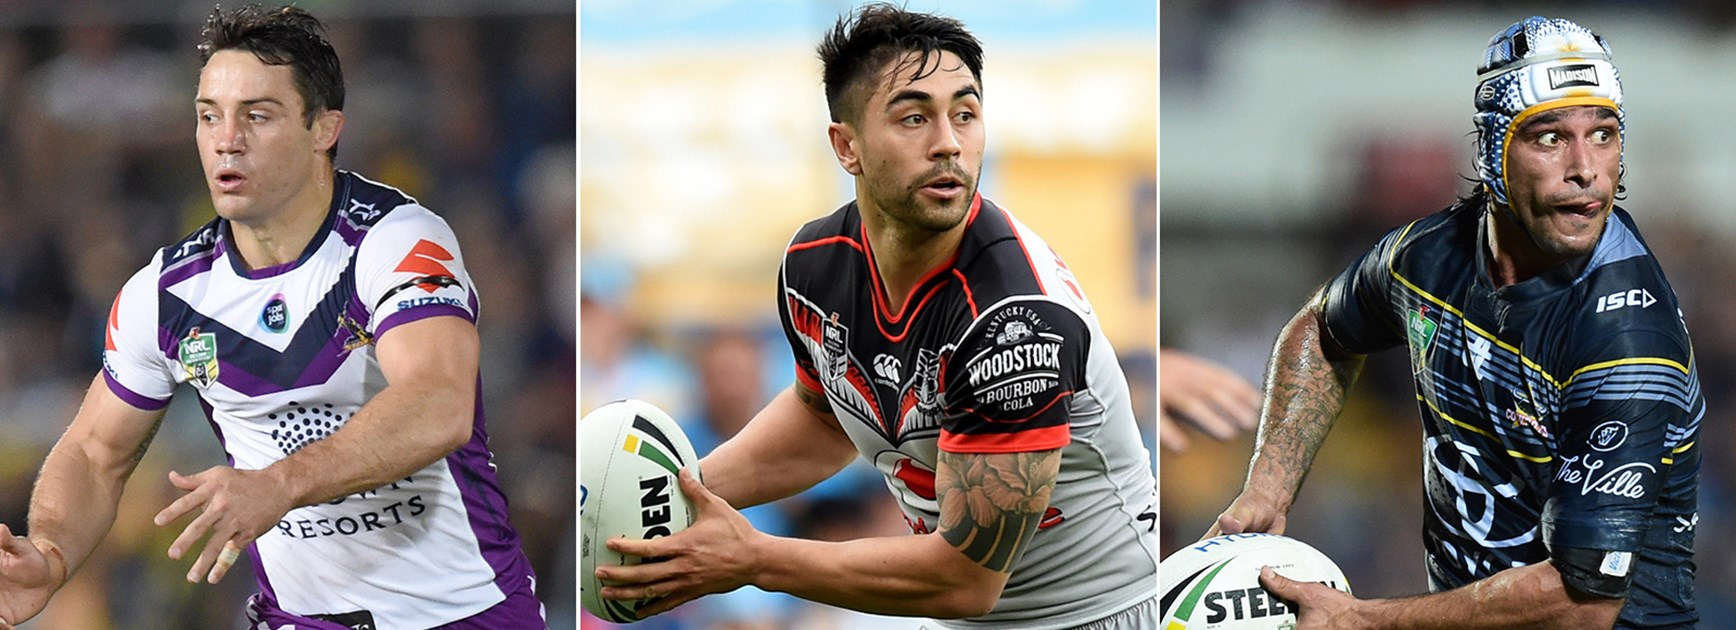 Cooper Cronk, Shaun Johnson and Johnathan Thurston all earned their place in NRL.com's top 10.